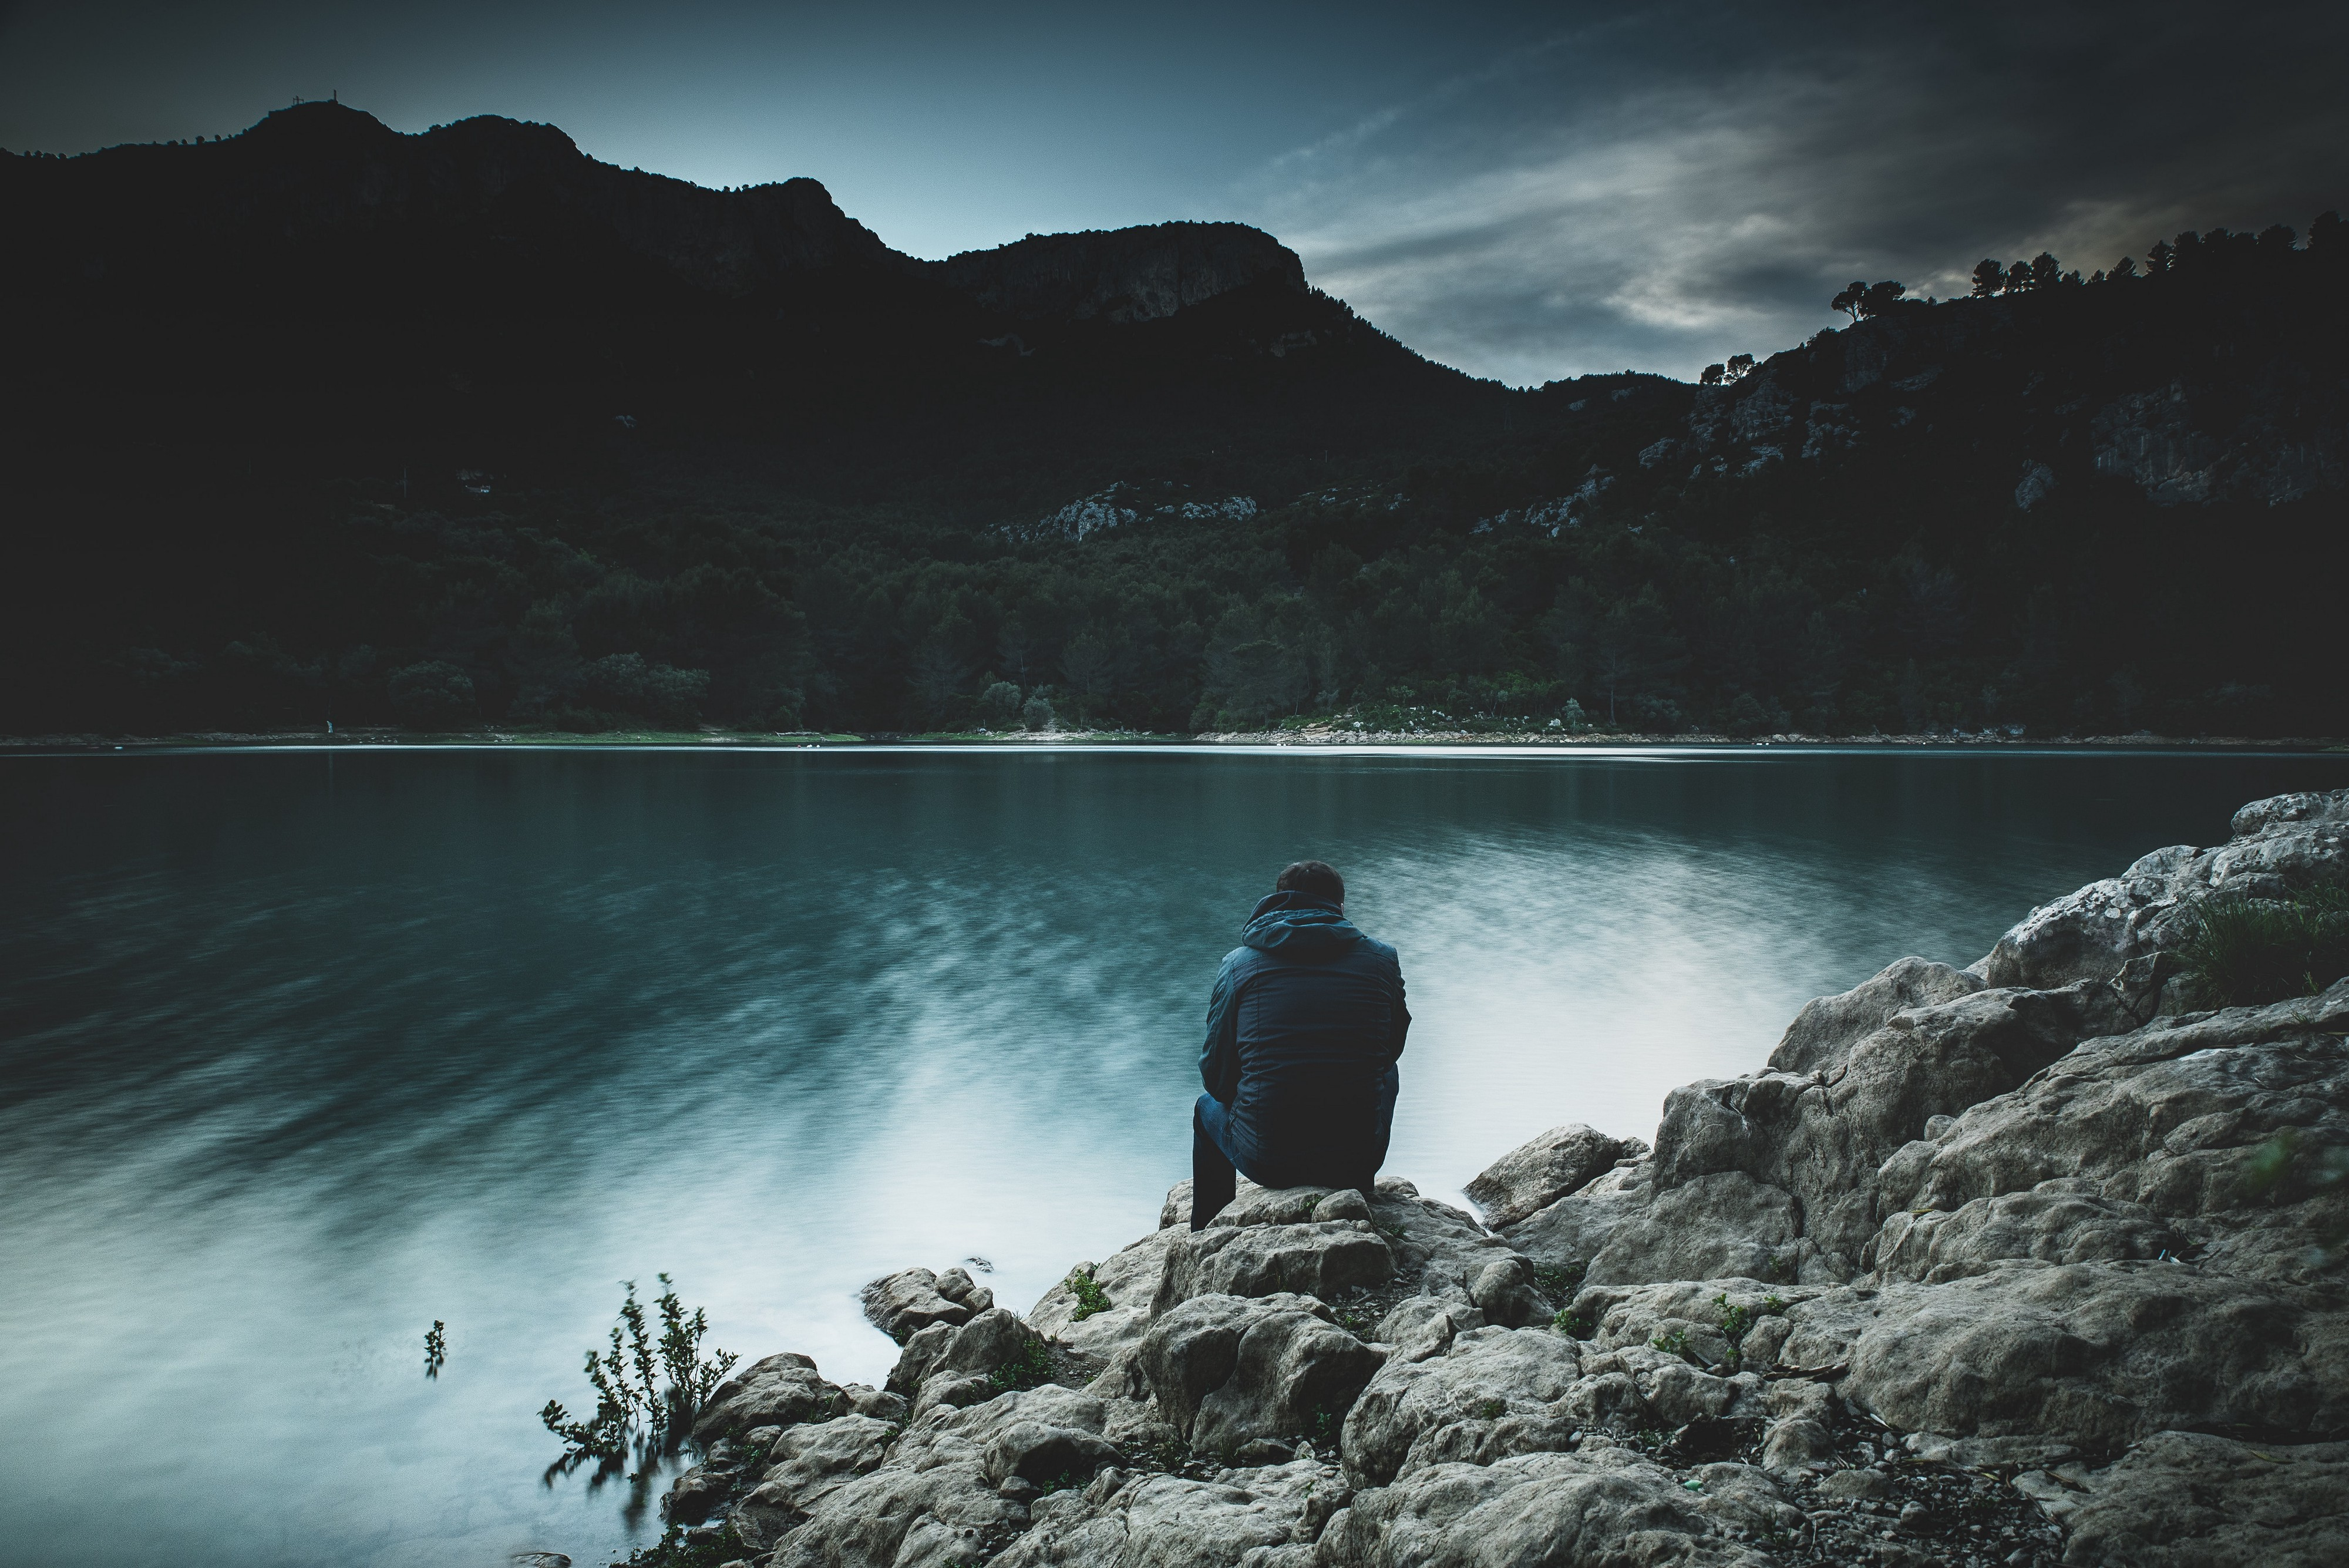 A man sitting alone in silence in front of a lake and mountains.